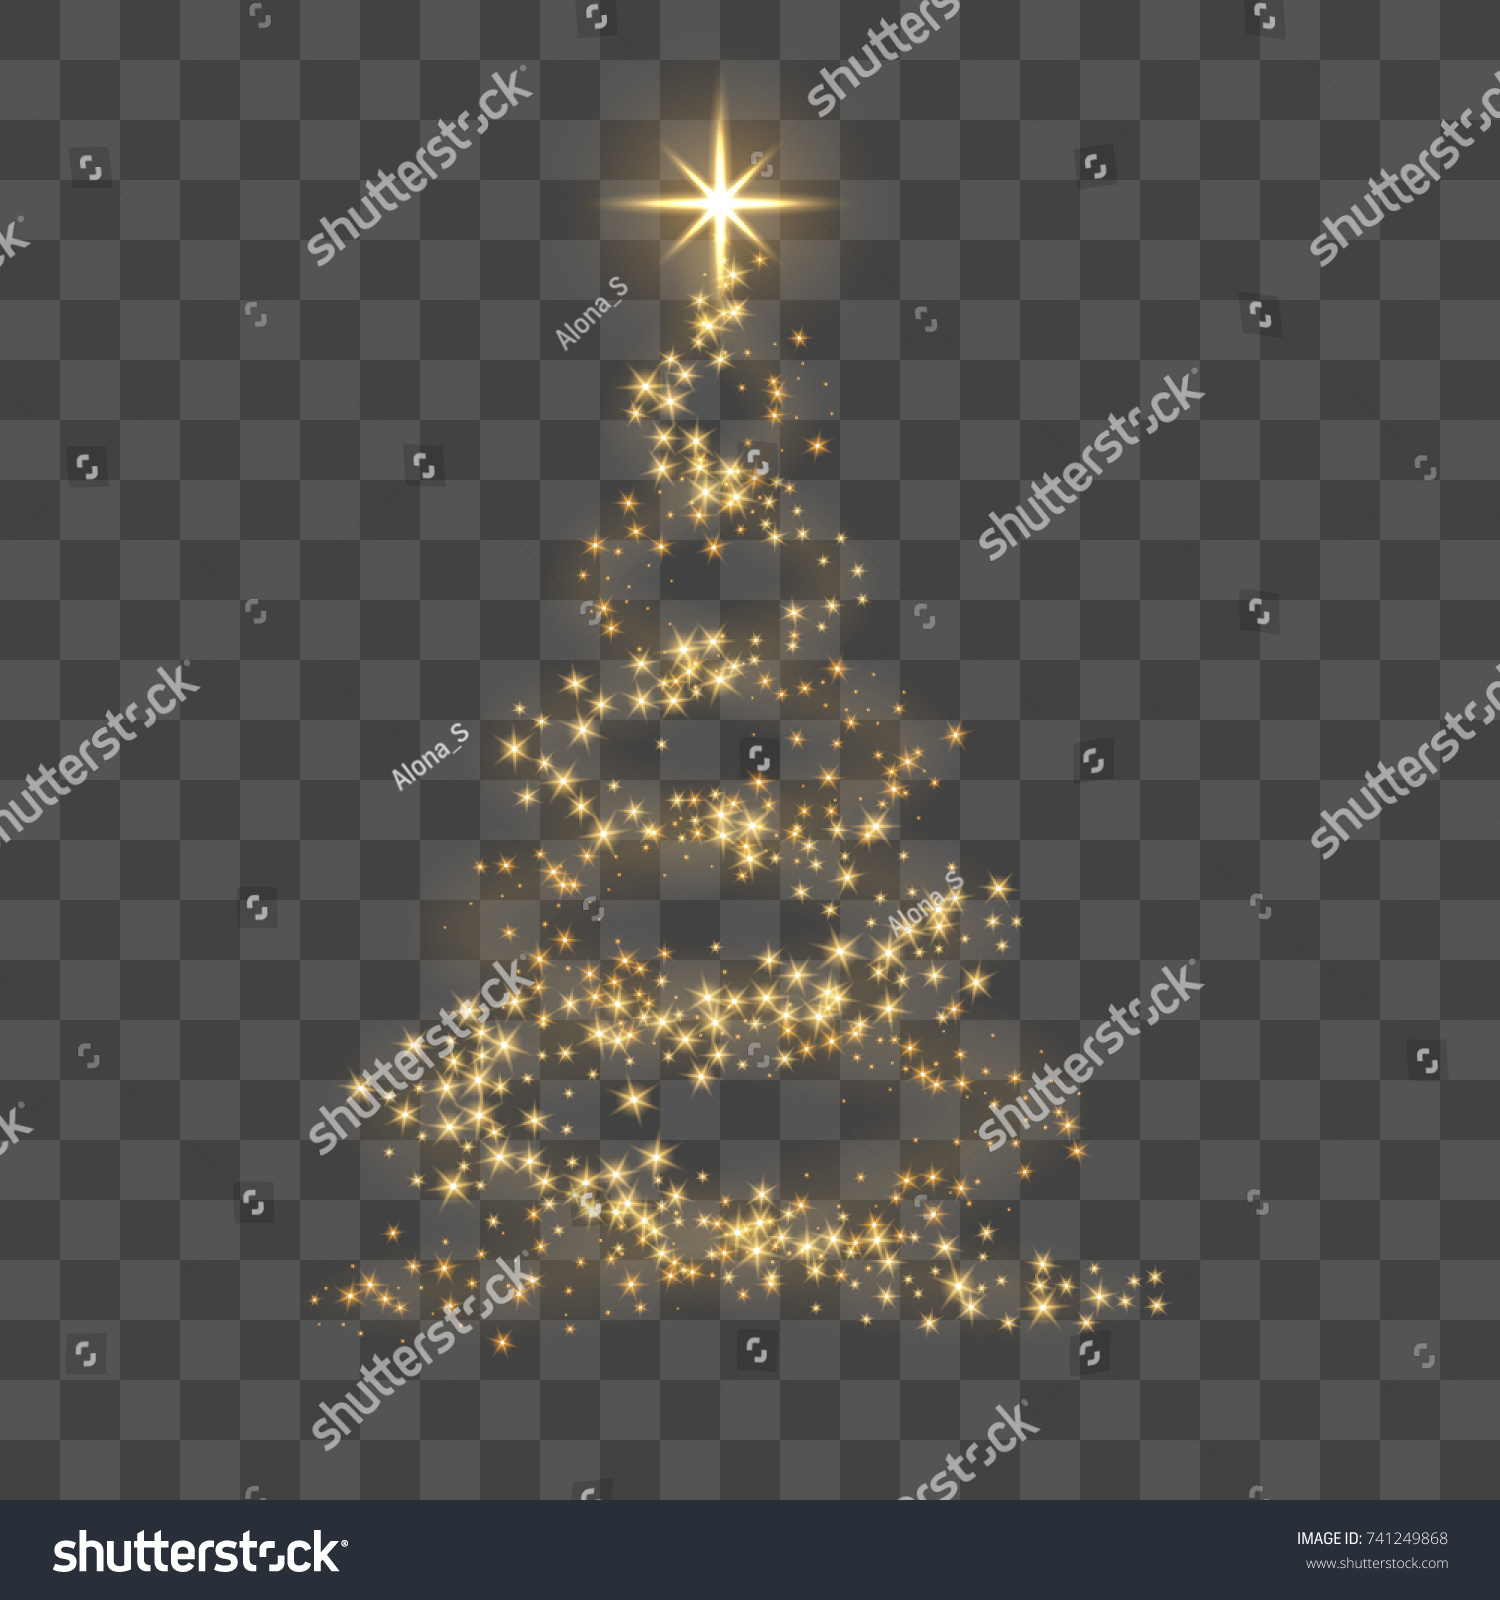 Christmas tree on transparent background. Gold Christmas tree as symbol of Happy New Year, Merry Christmas holiday celebration. Golden light decoration. Bright shiny design Vector illustration #741249868